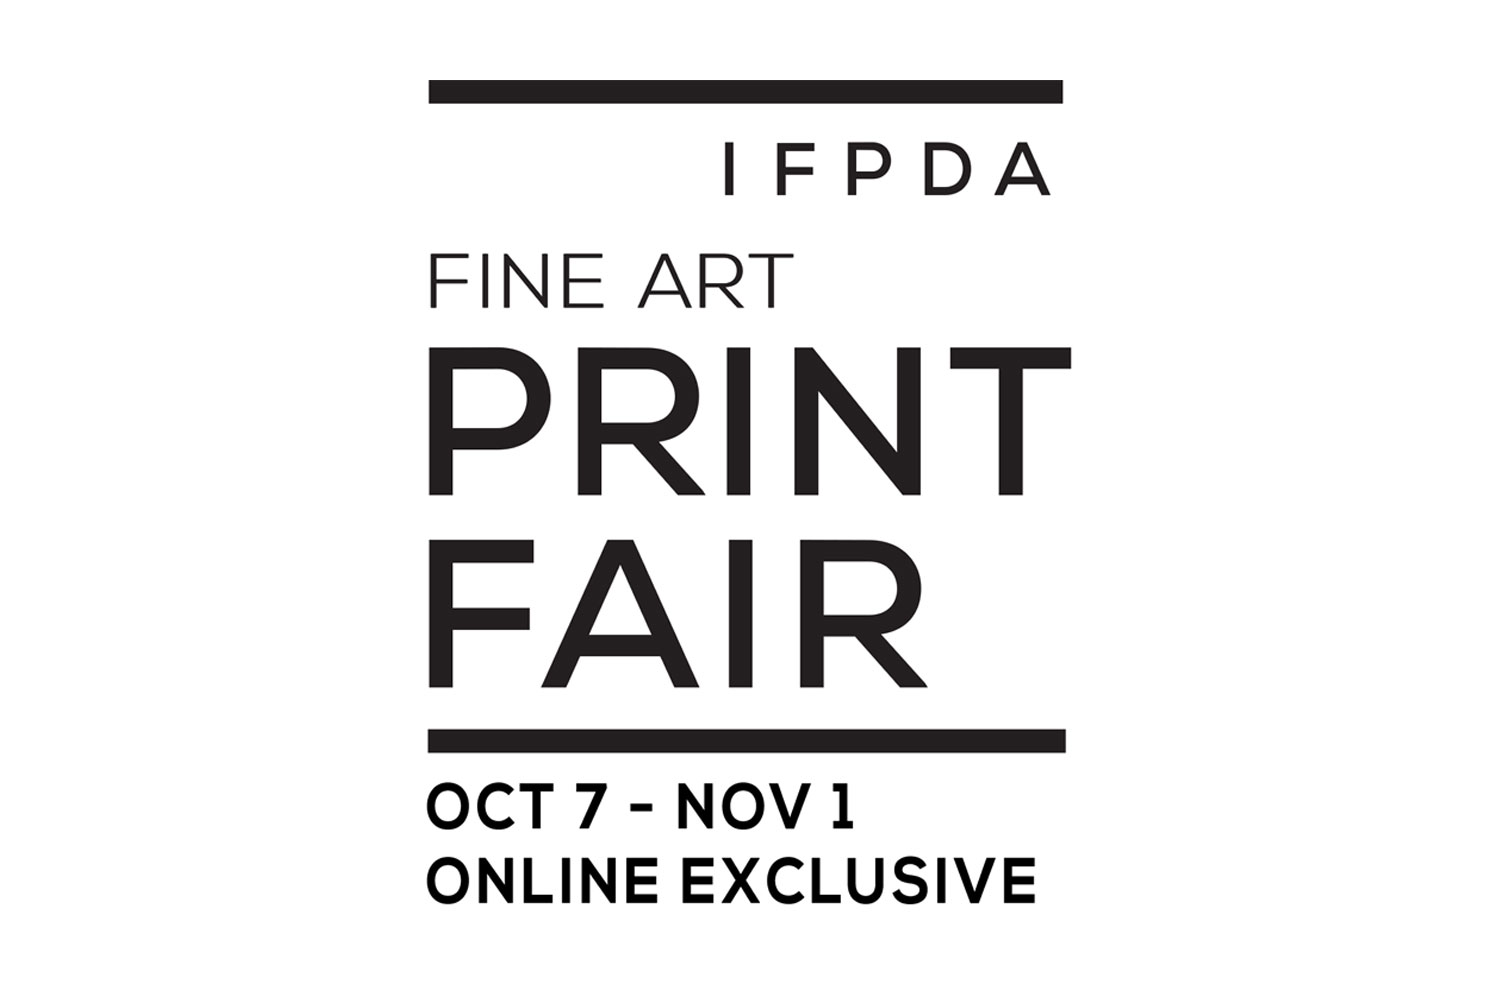 IFPDA FINE ART PRINT FAIR ONLINE EXCLUSIVE